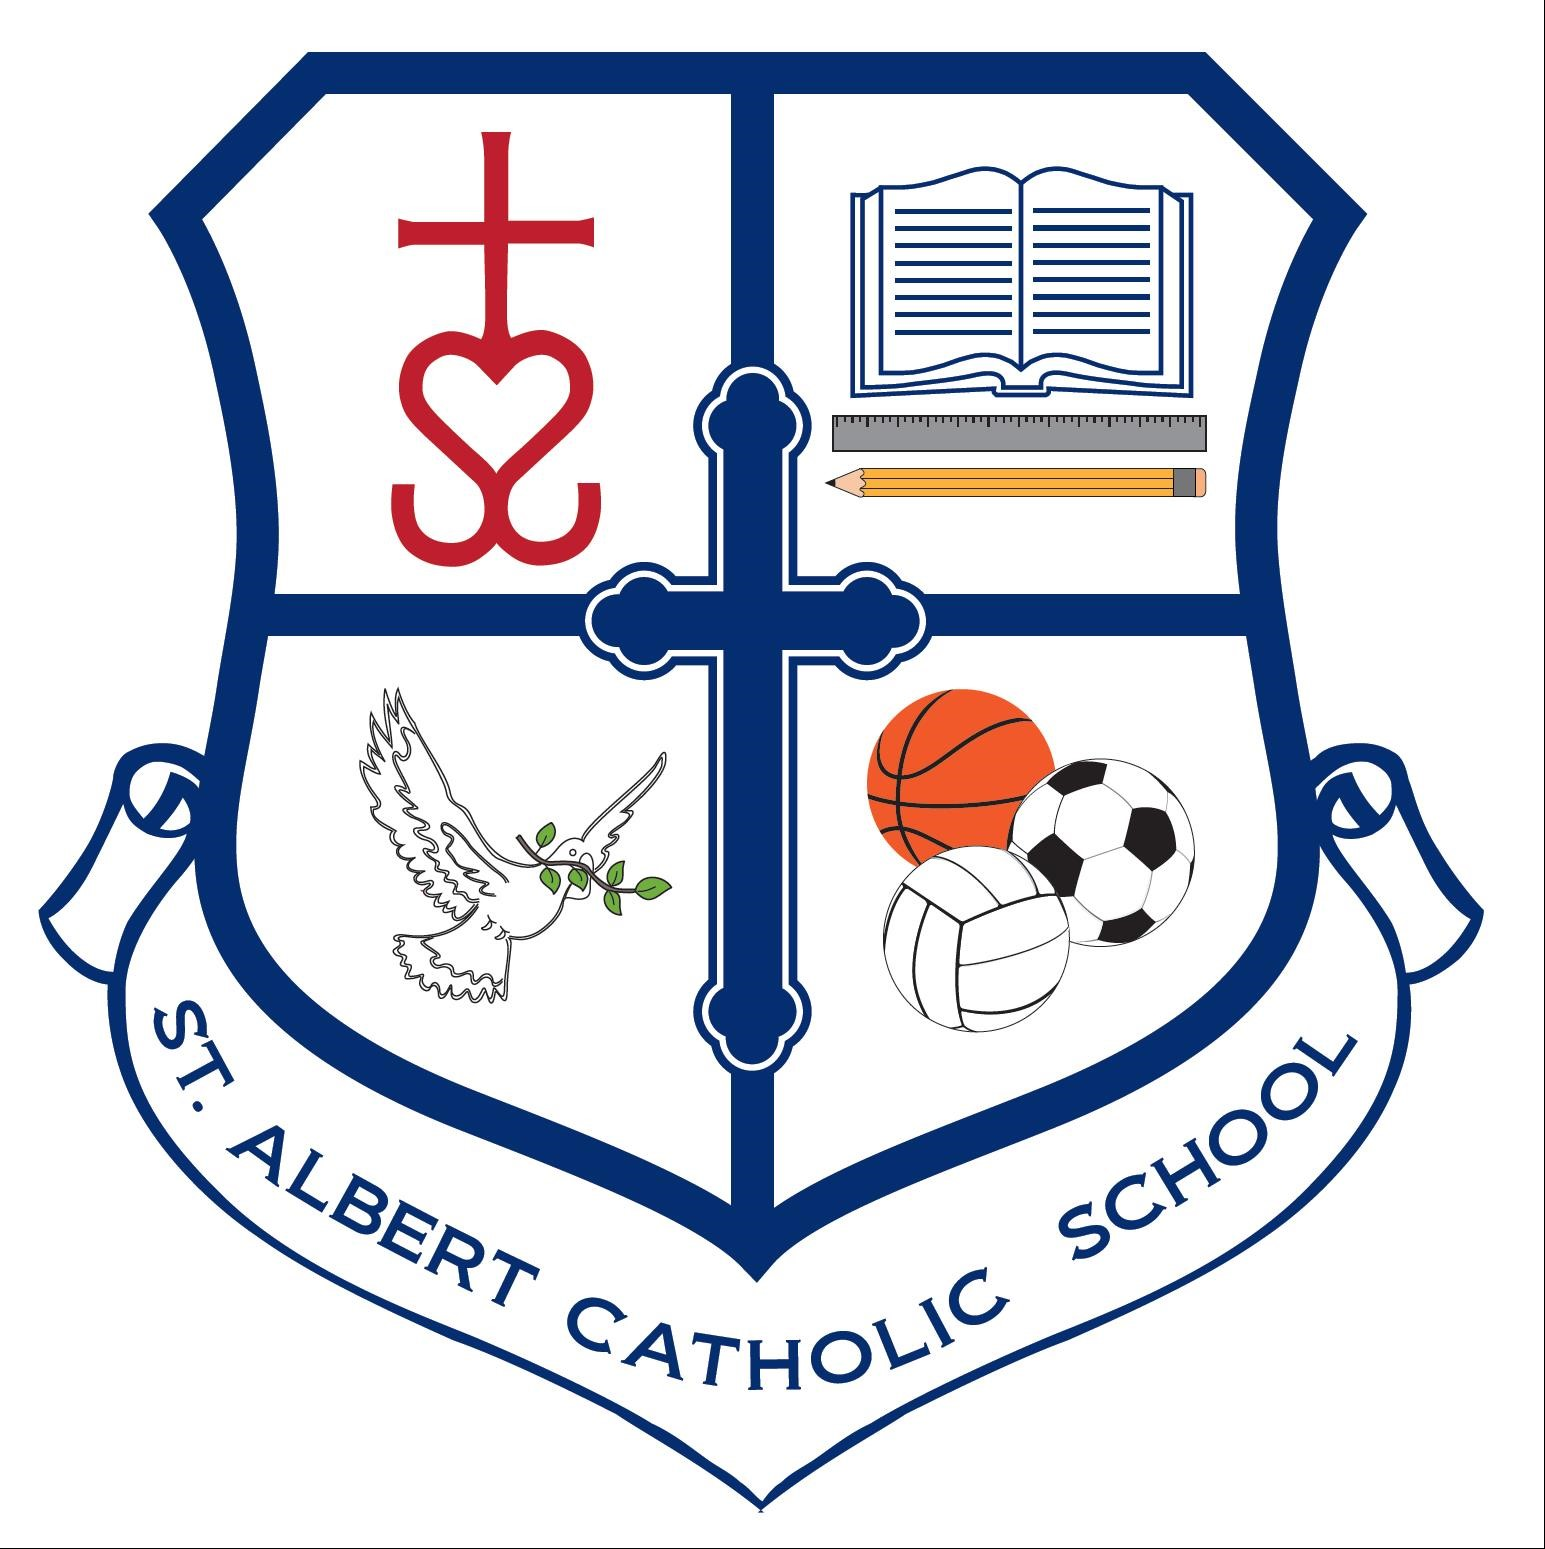 Board of education for catholic school clipart svg freeuse Toronto Catholic District School Board svg freeuse